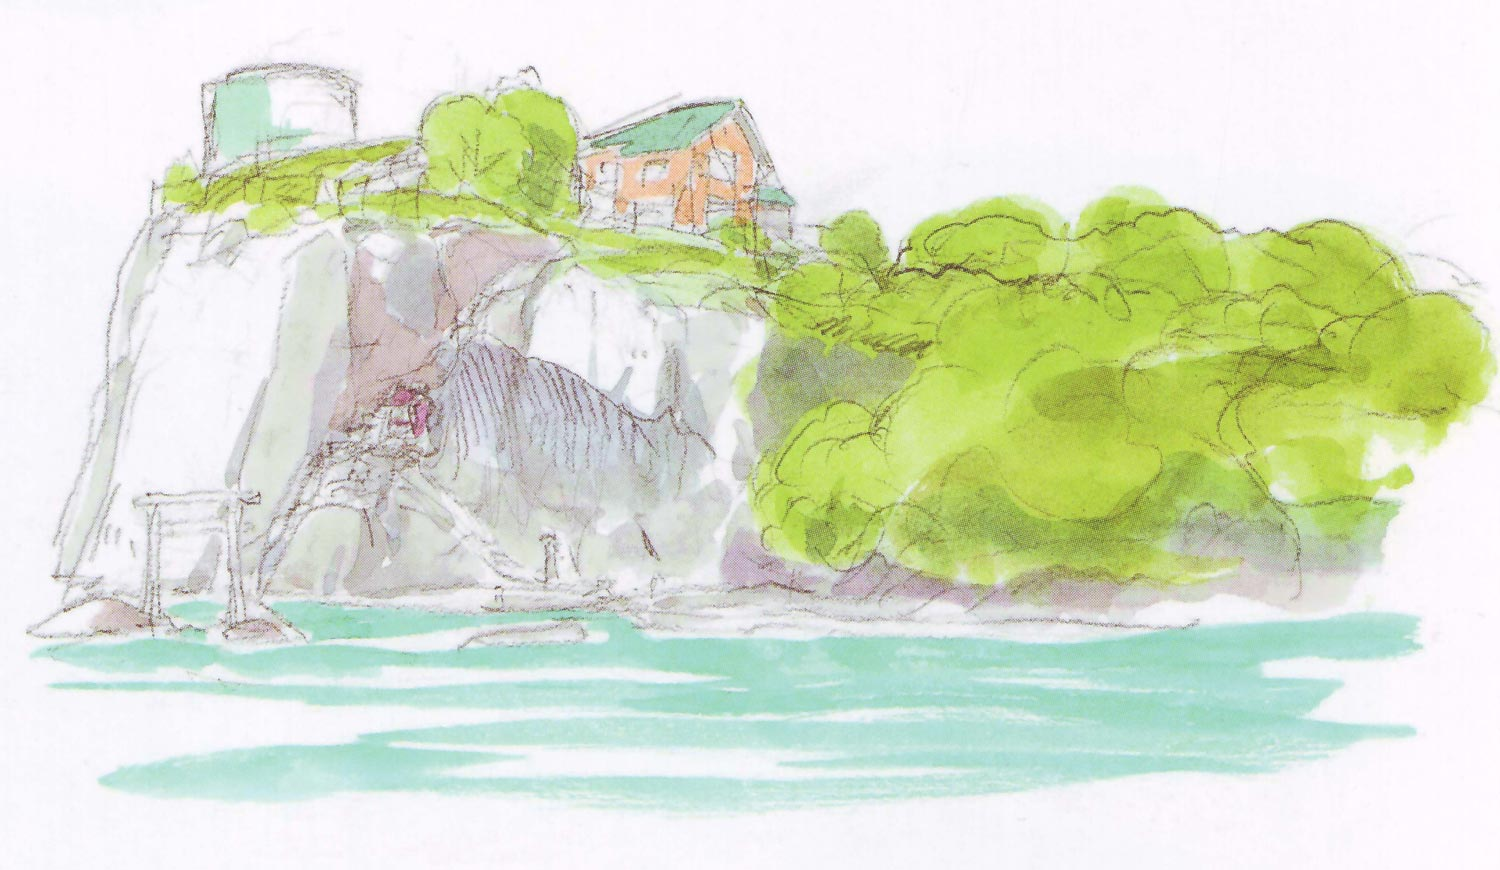 ponyo_on_the_cliff_by_the_sea_background_08.jpg